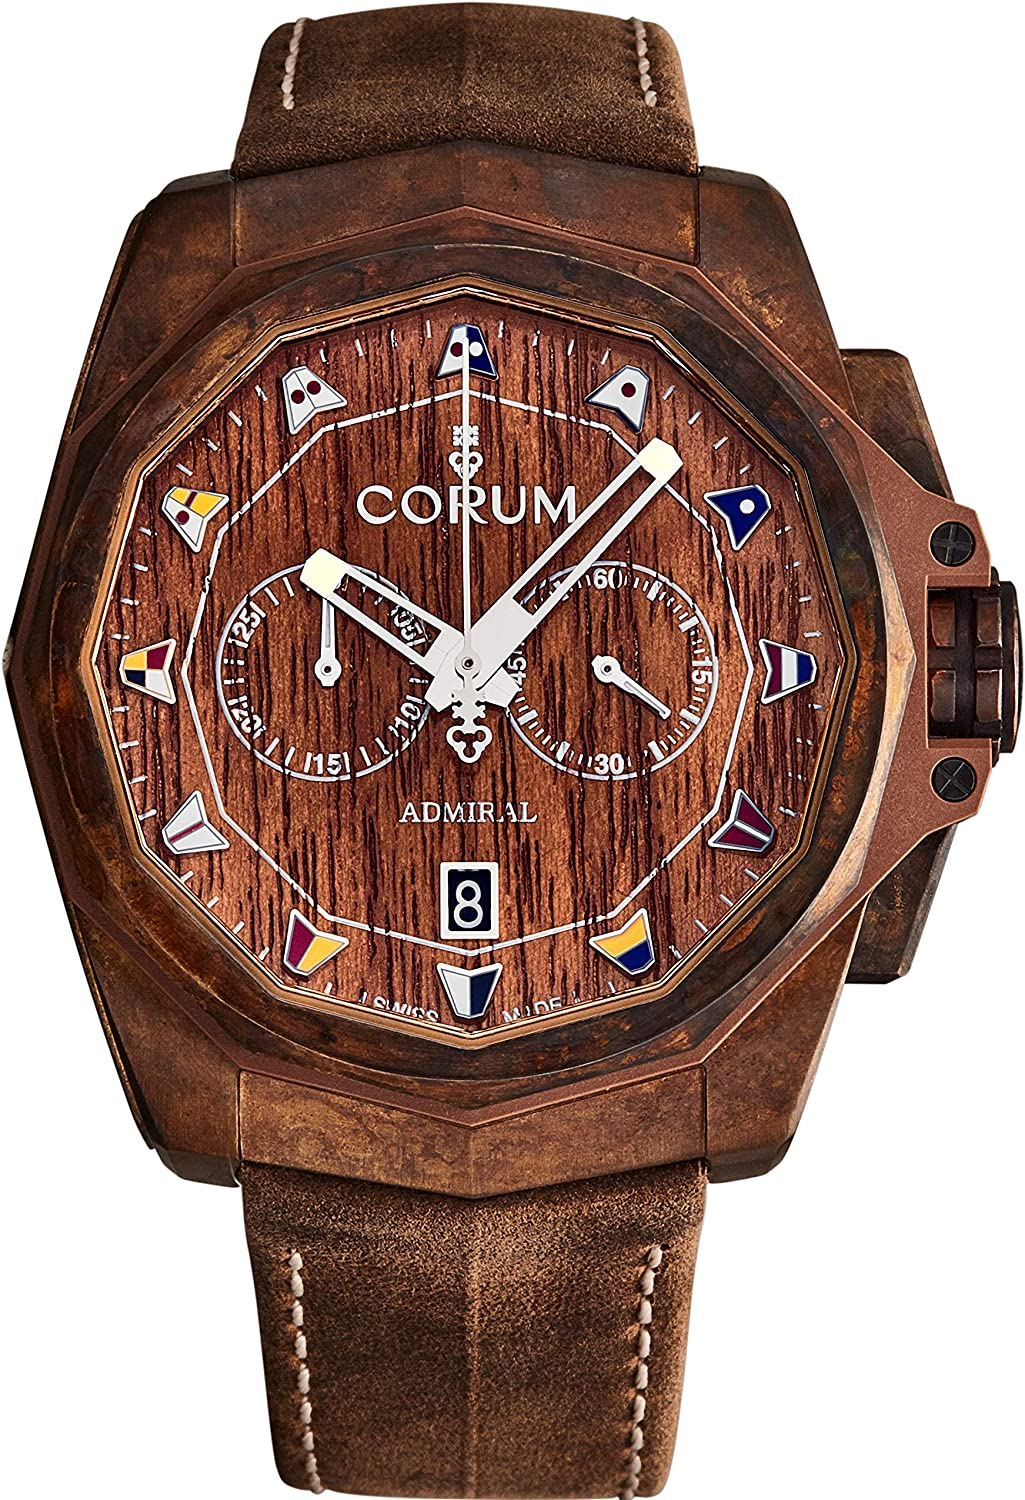 Corum Men's 'Admiral Cup' Automatic Chronograph Watch - Wood Decorated Dial with Silver Luminous Hands - Sapphire Crystal and Brown Leather Strap Bronze Swiss Watch for Men A116/03475